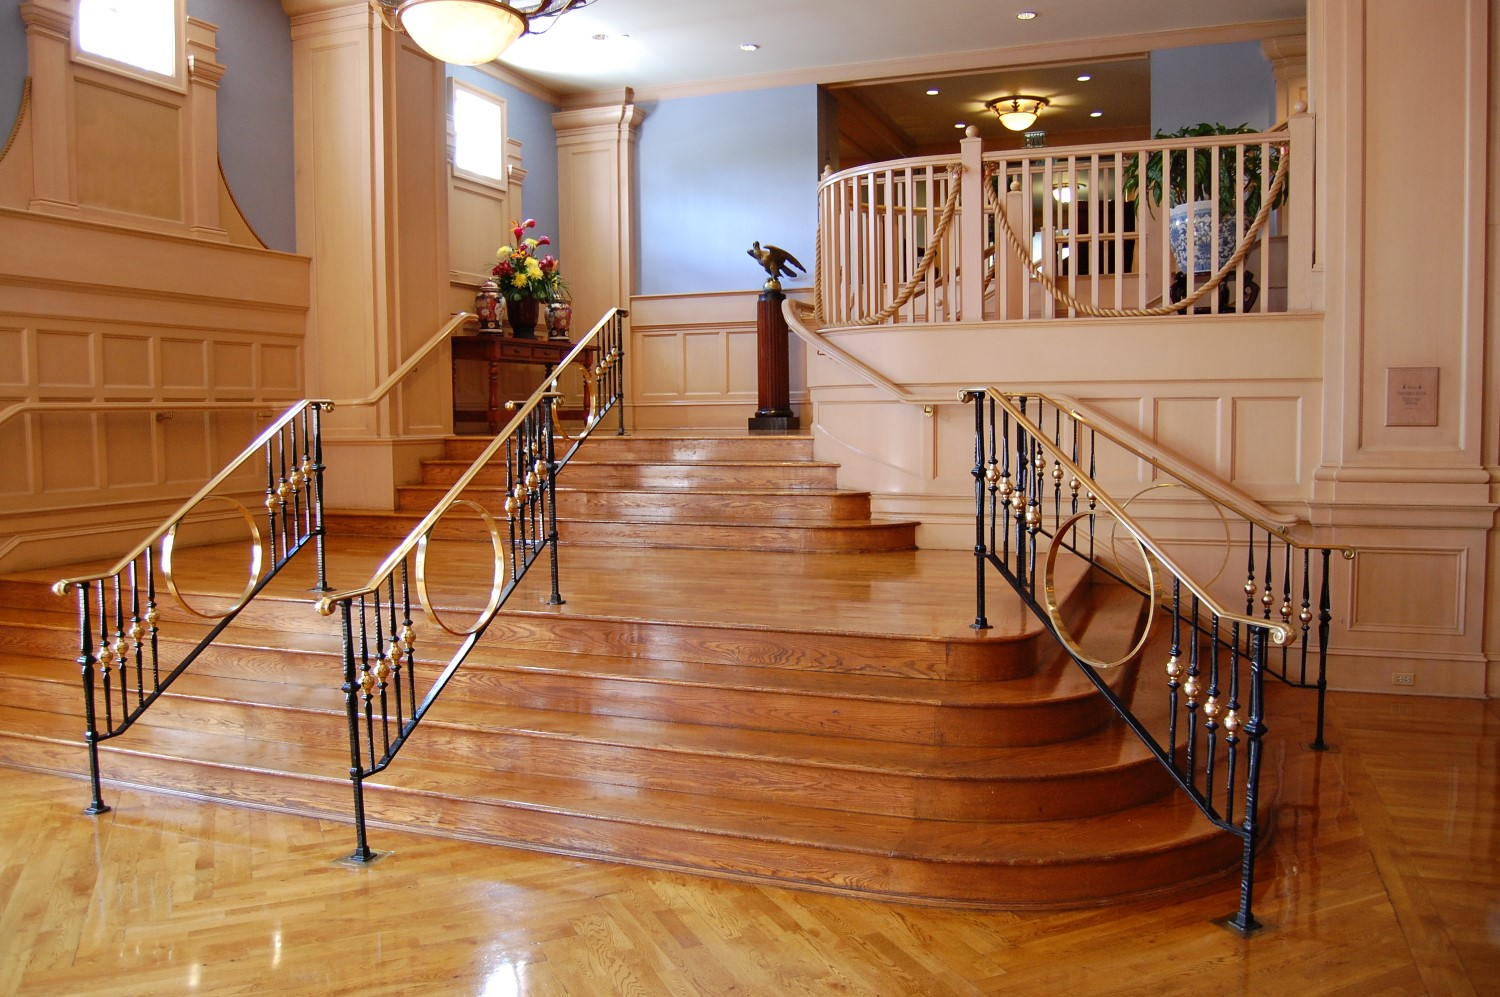 Lovely stairs in the lobby of Disney's Yacht Club Resort at Disney World.